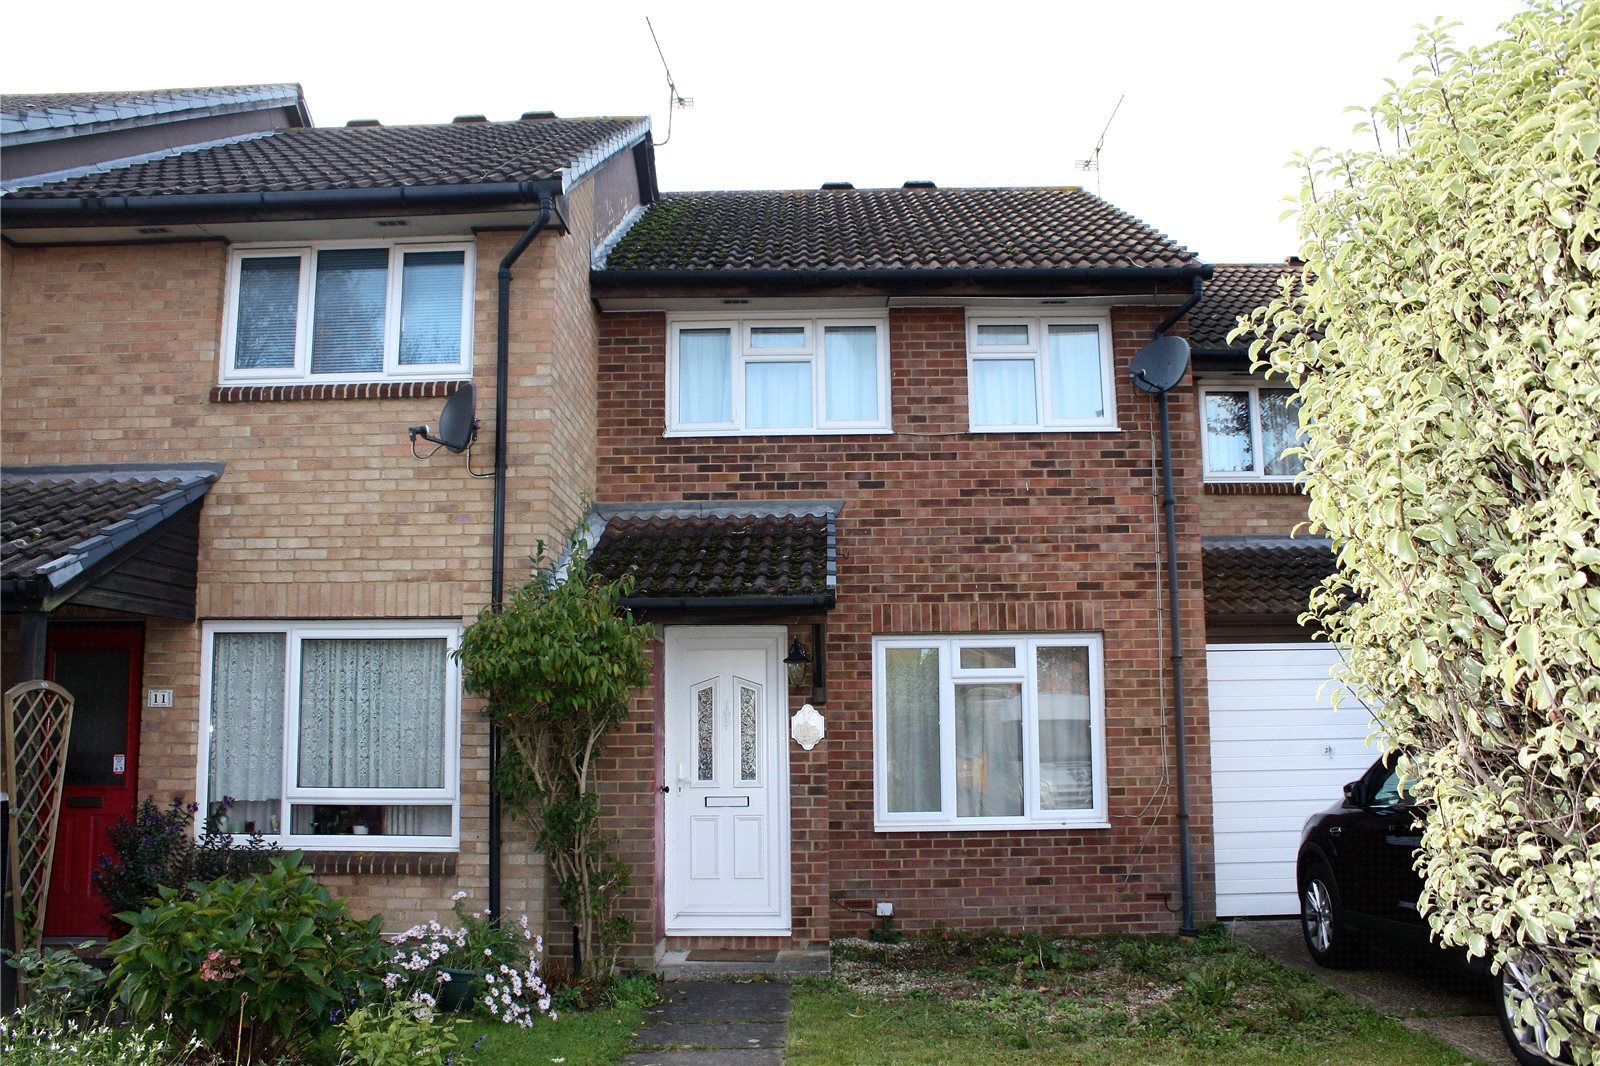 Parkers woodley 3 bedroom house to rent in trusthorpe - 1 bedroom house to rent in reading ...